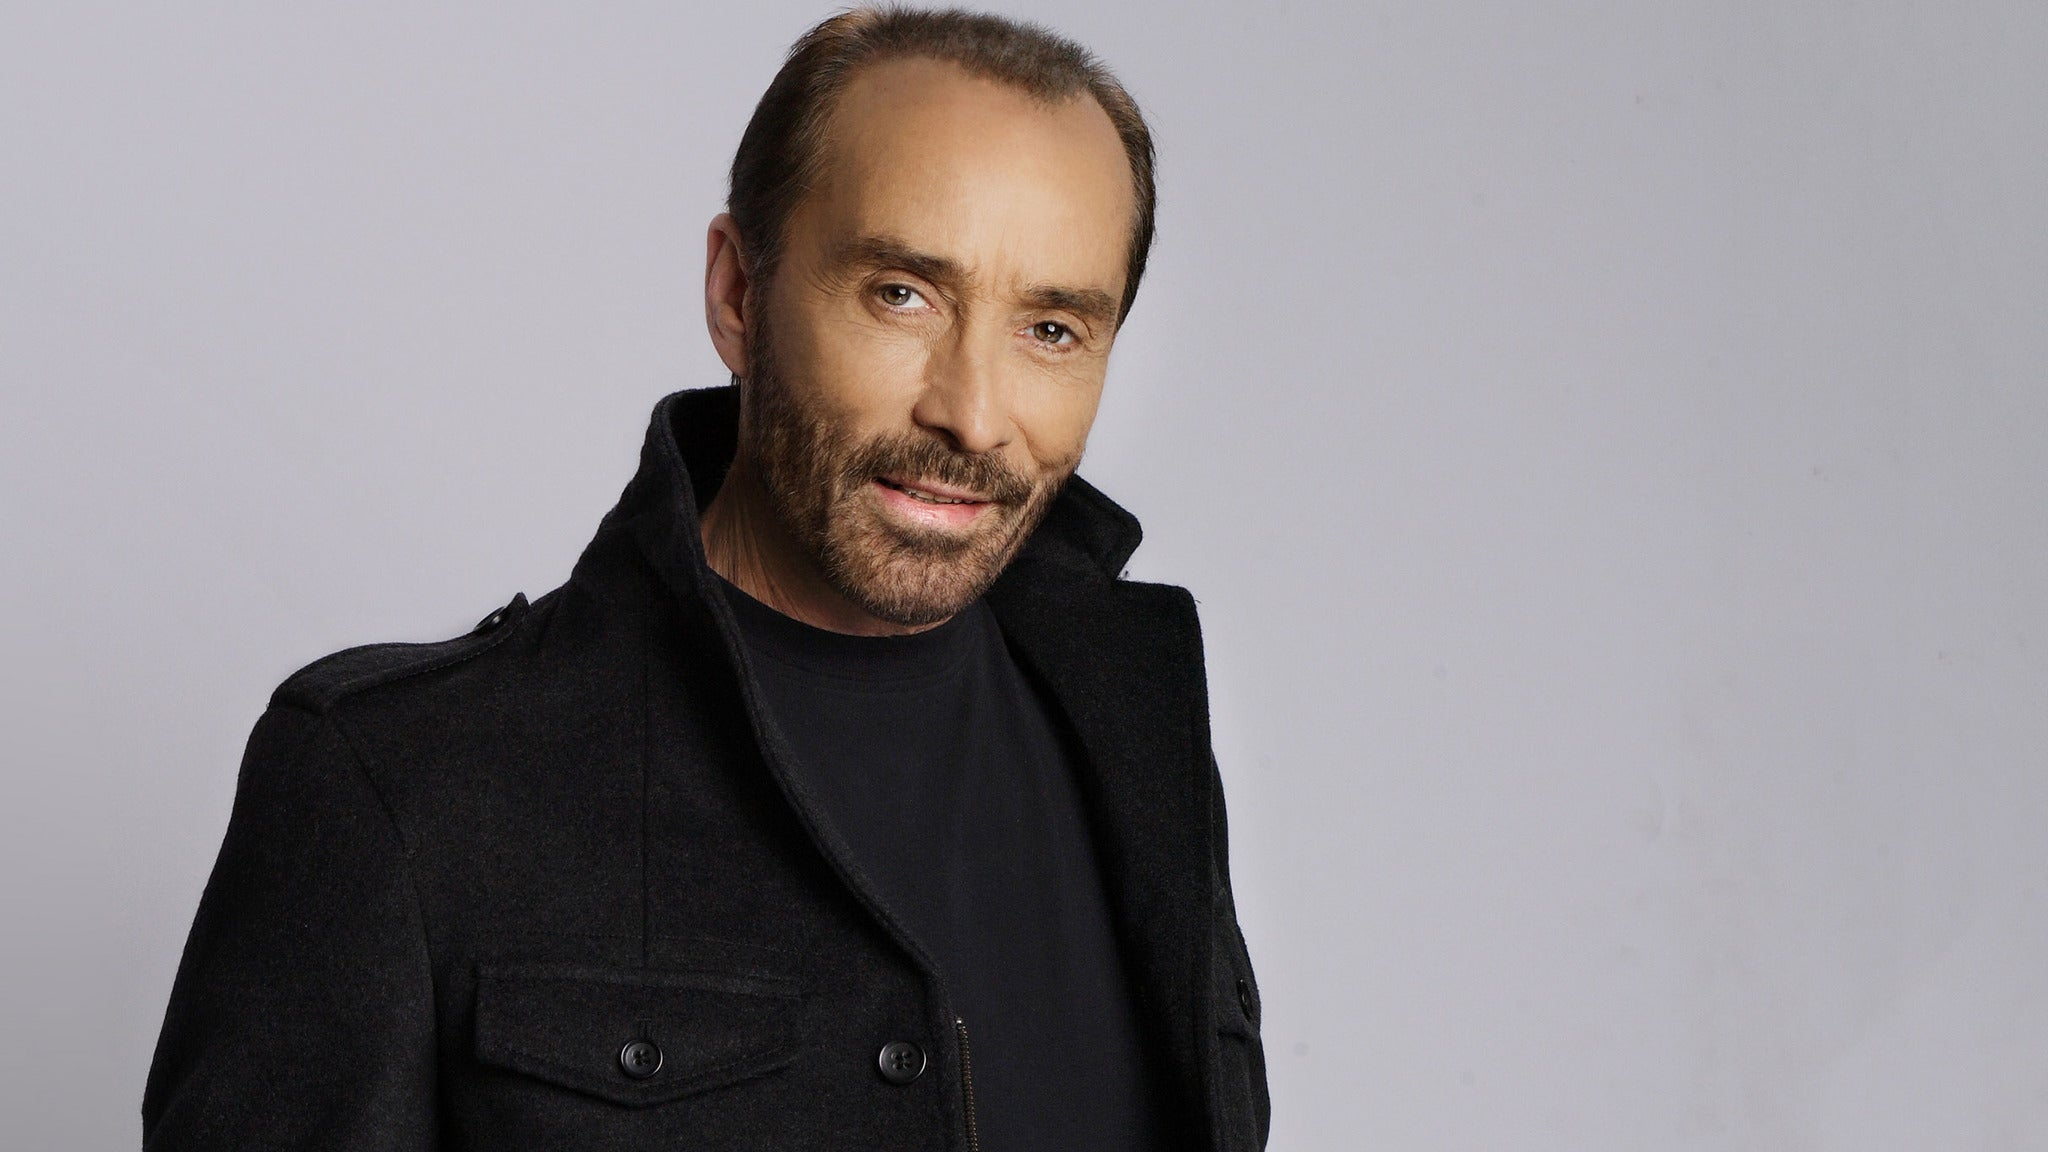 Lee Greenwood at Van Wezel Performing Arts Center